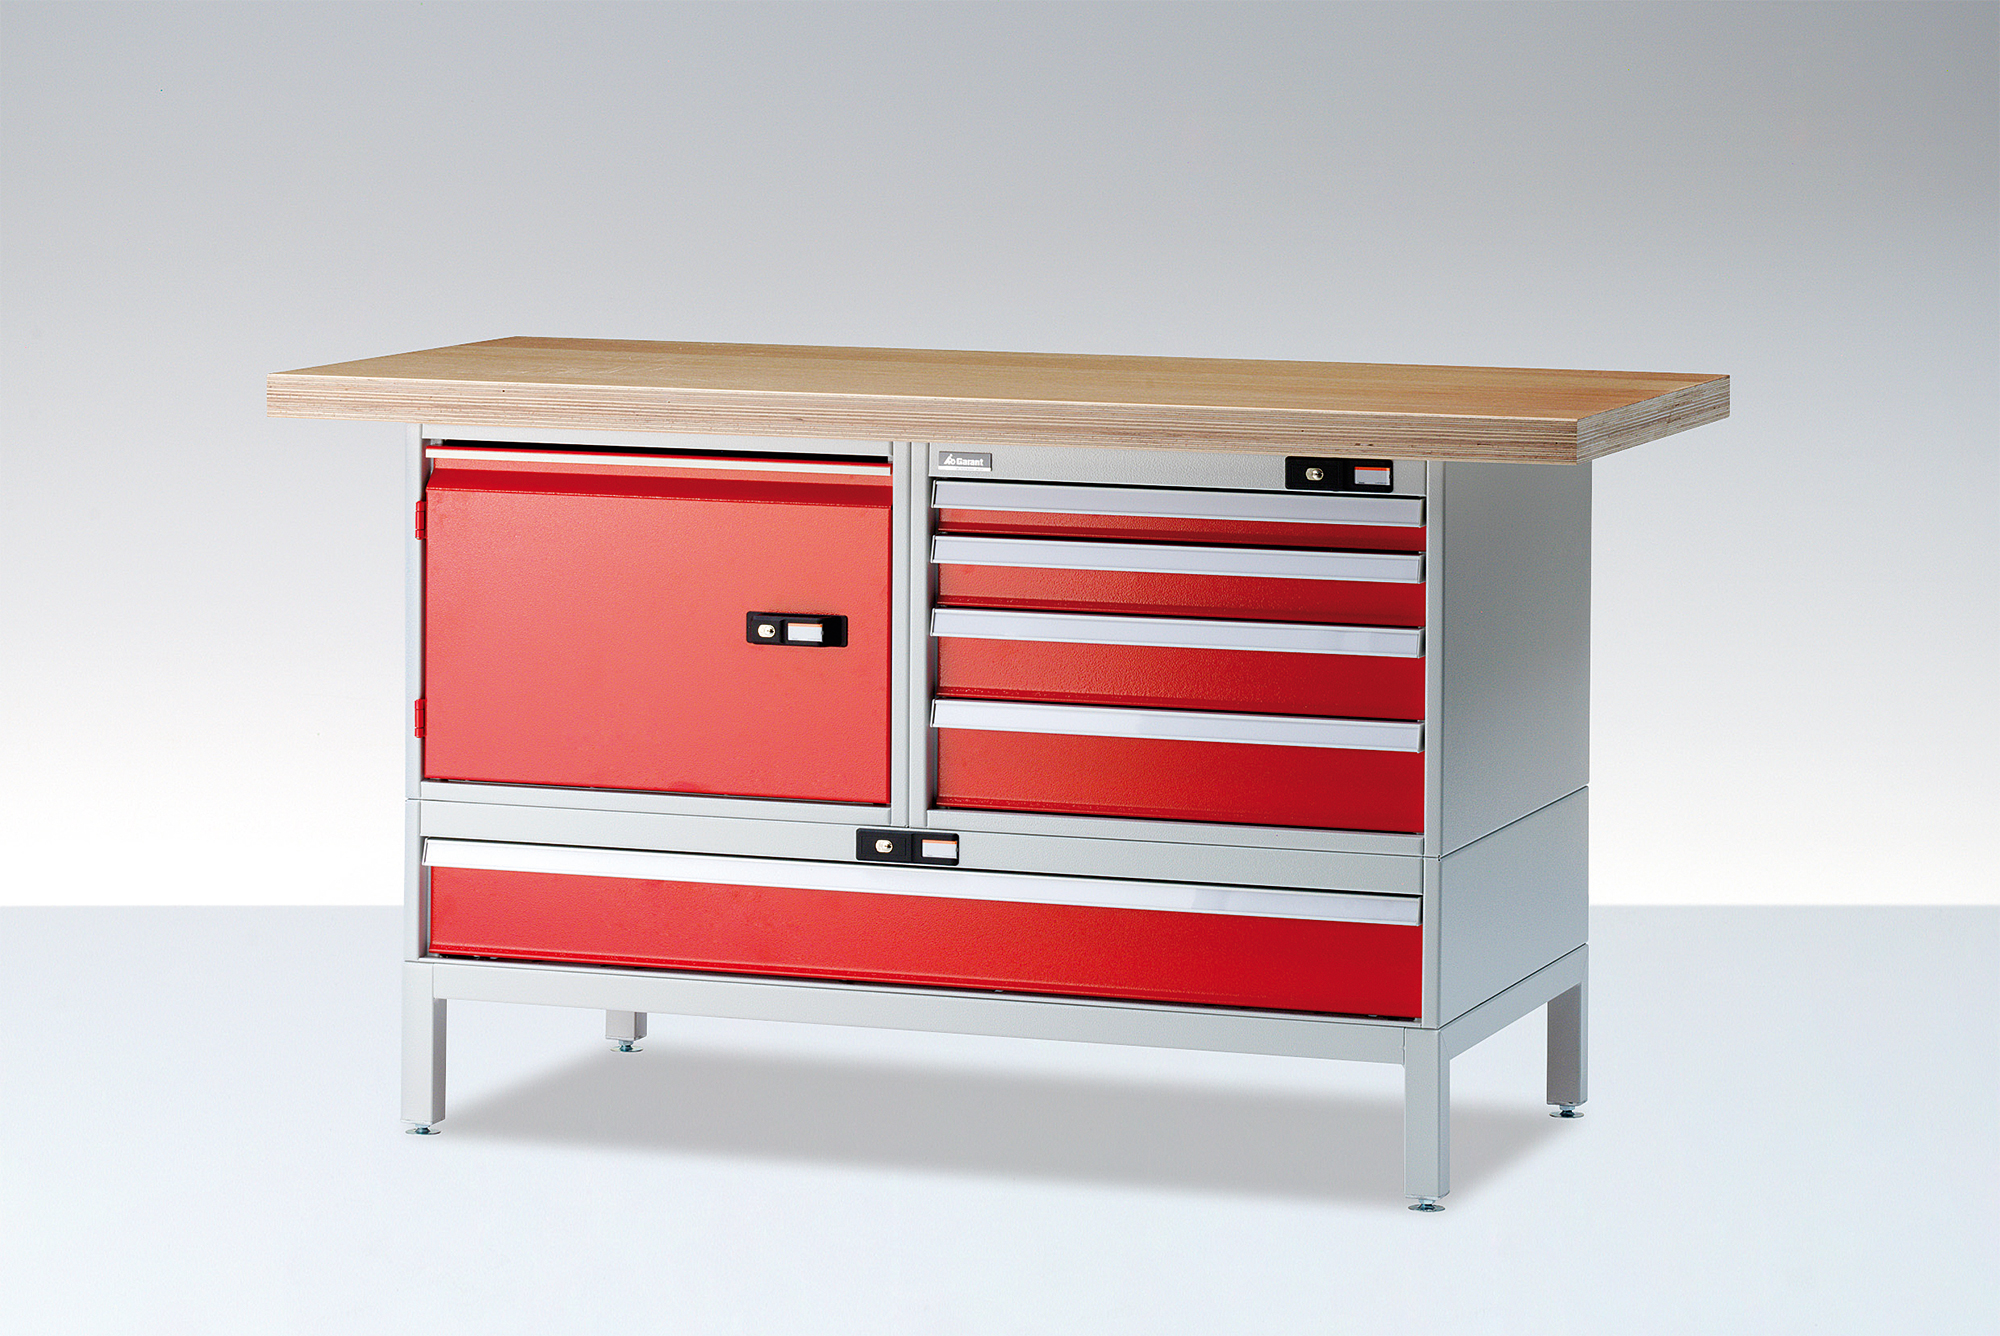 Freilacke functional furniture freilacke for Functional furniture